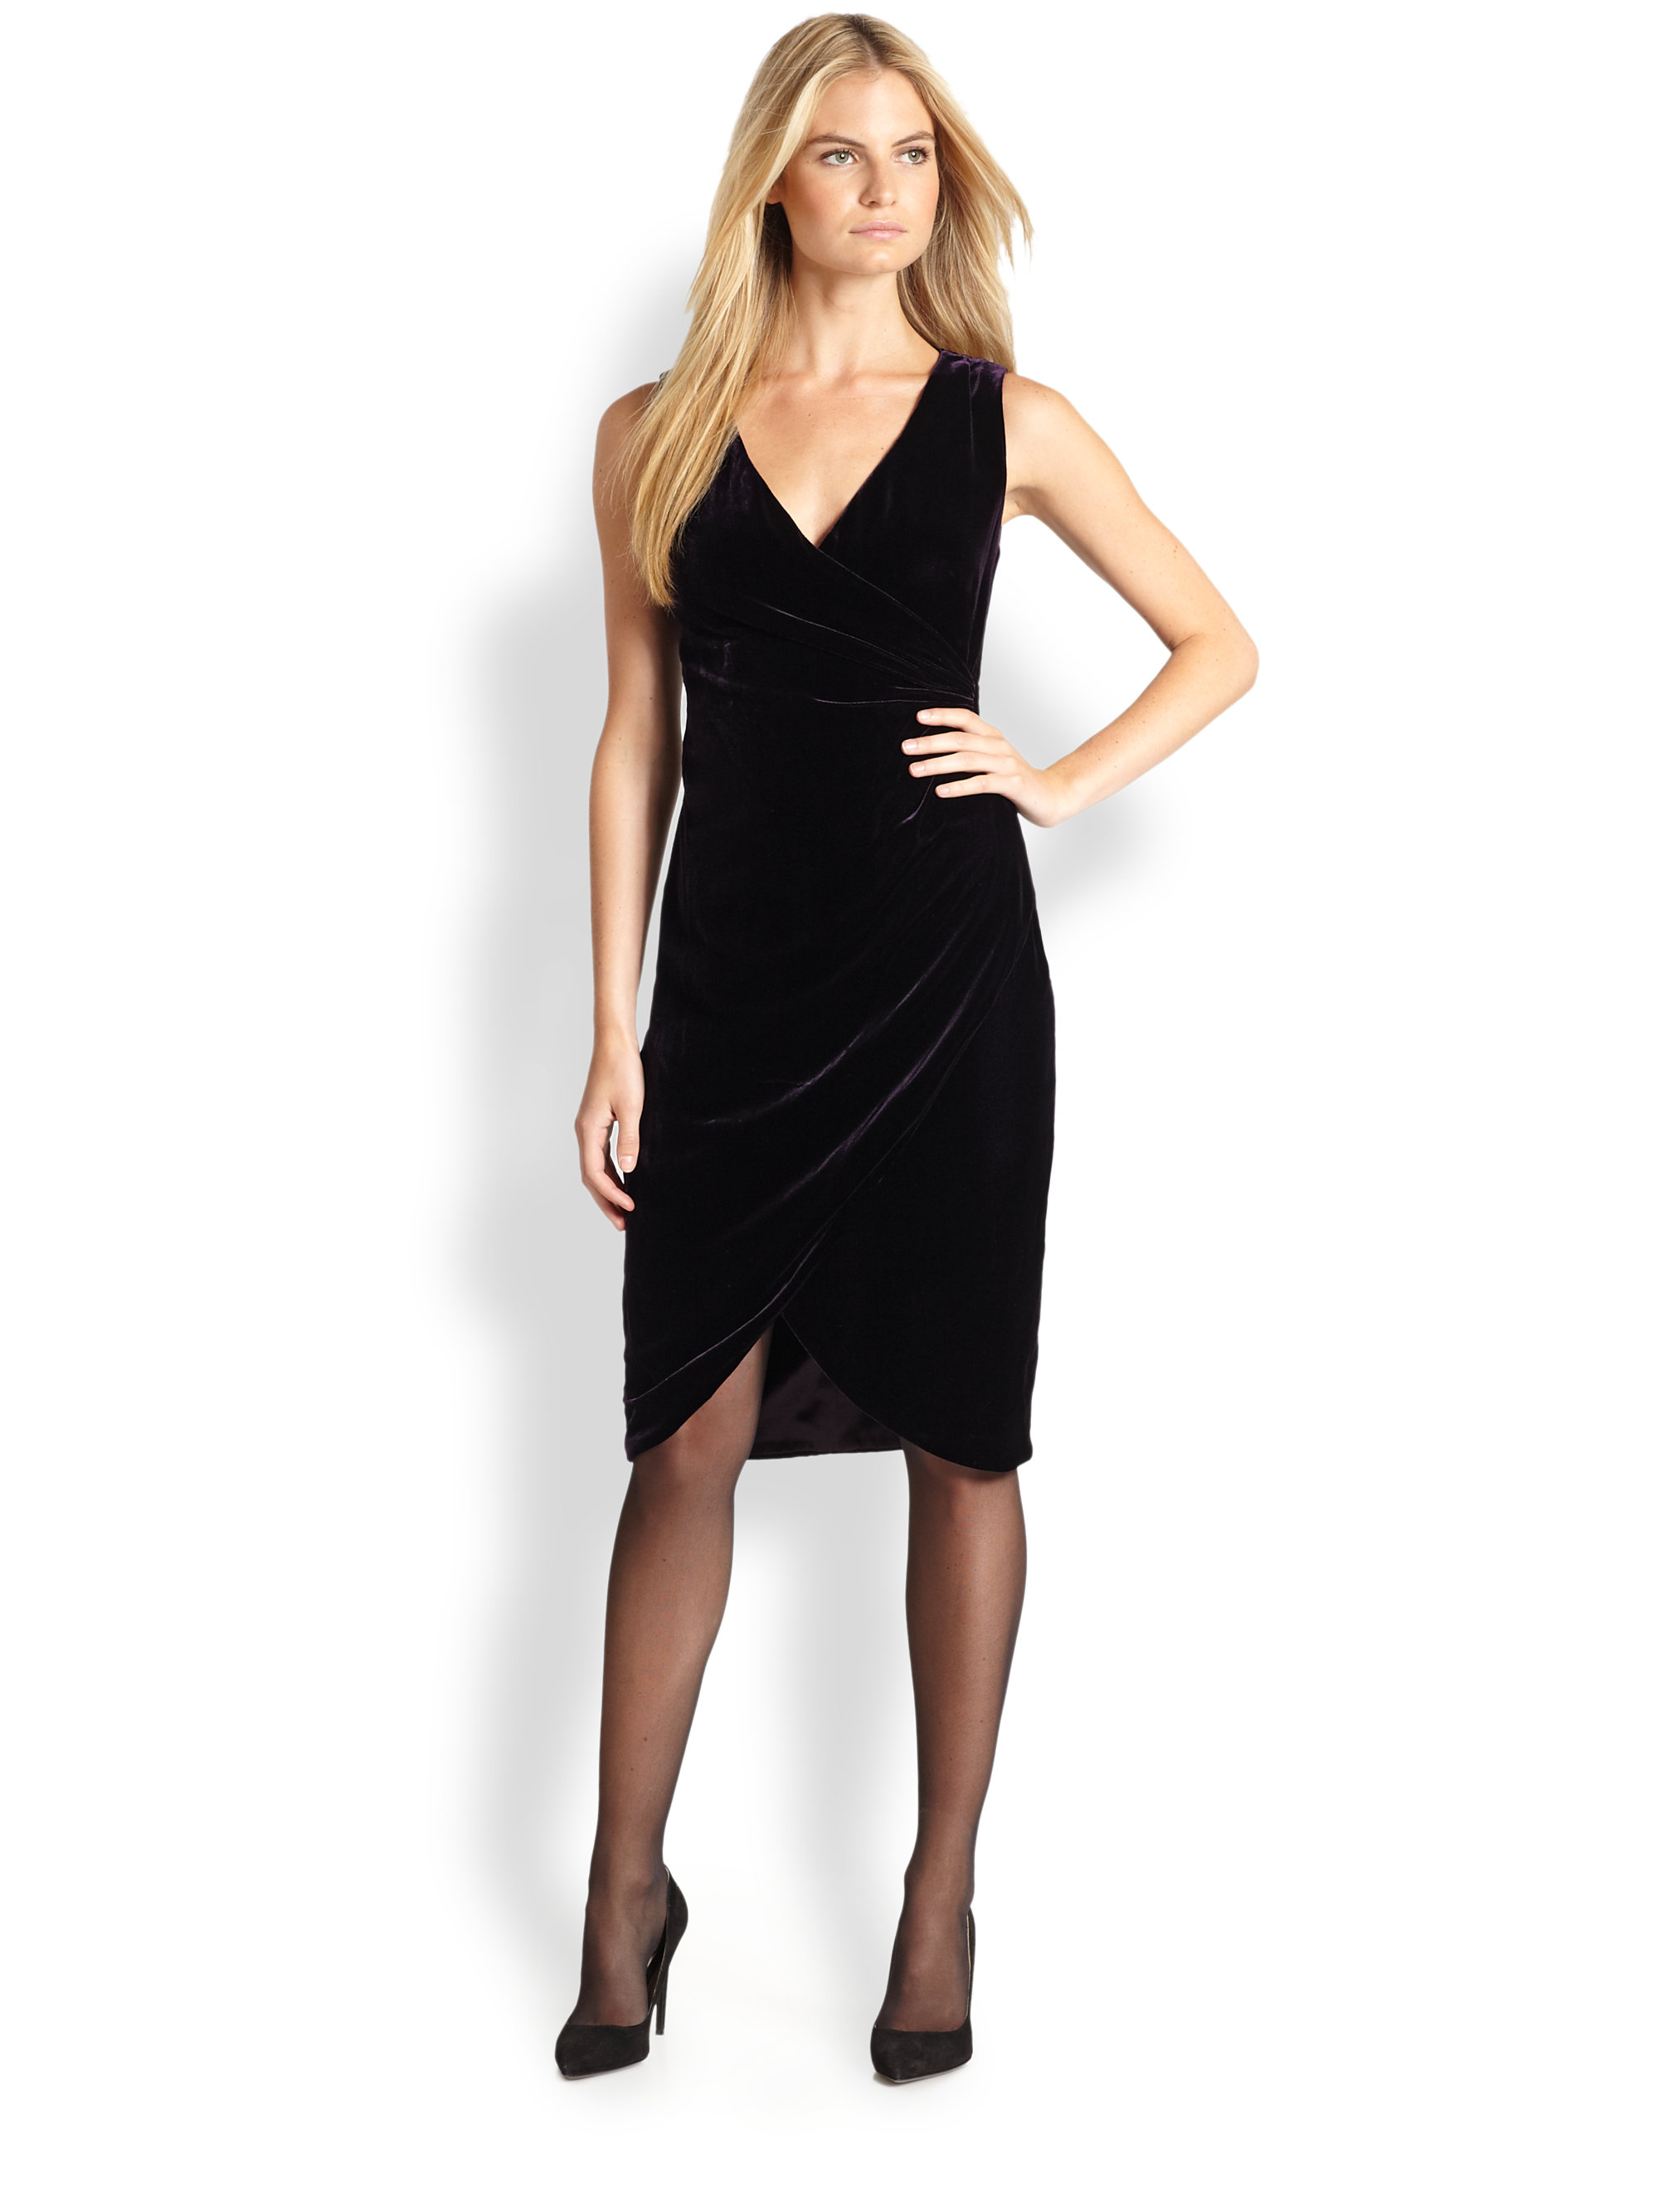 Online shopping from a great selection at Clothing, Shoes & Jewelry seriespedia.ml of the Day· Read Ratings & Reviews· Shop Best Sellers· Shop Our Huge Selection2,,+ followers on Twitter.